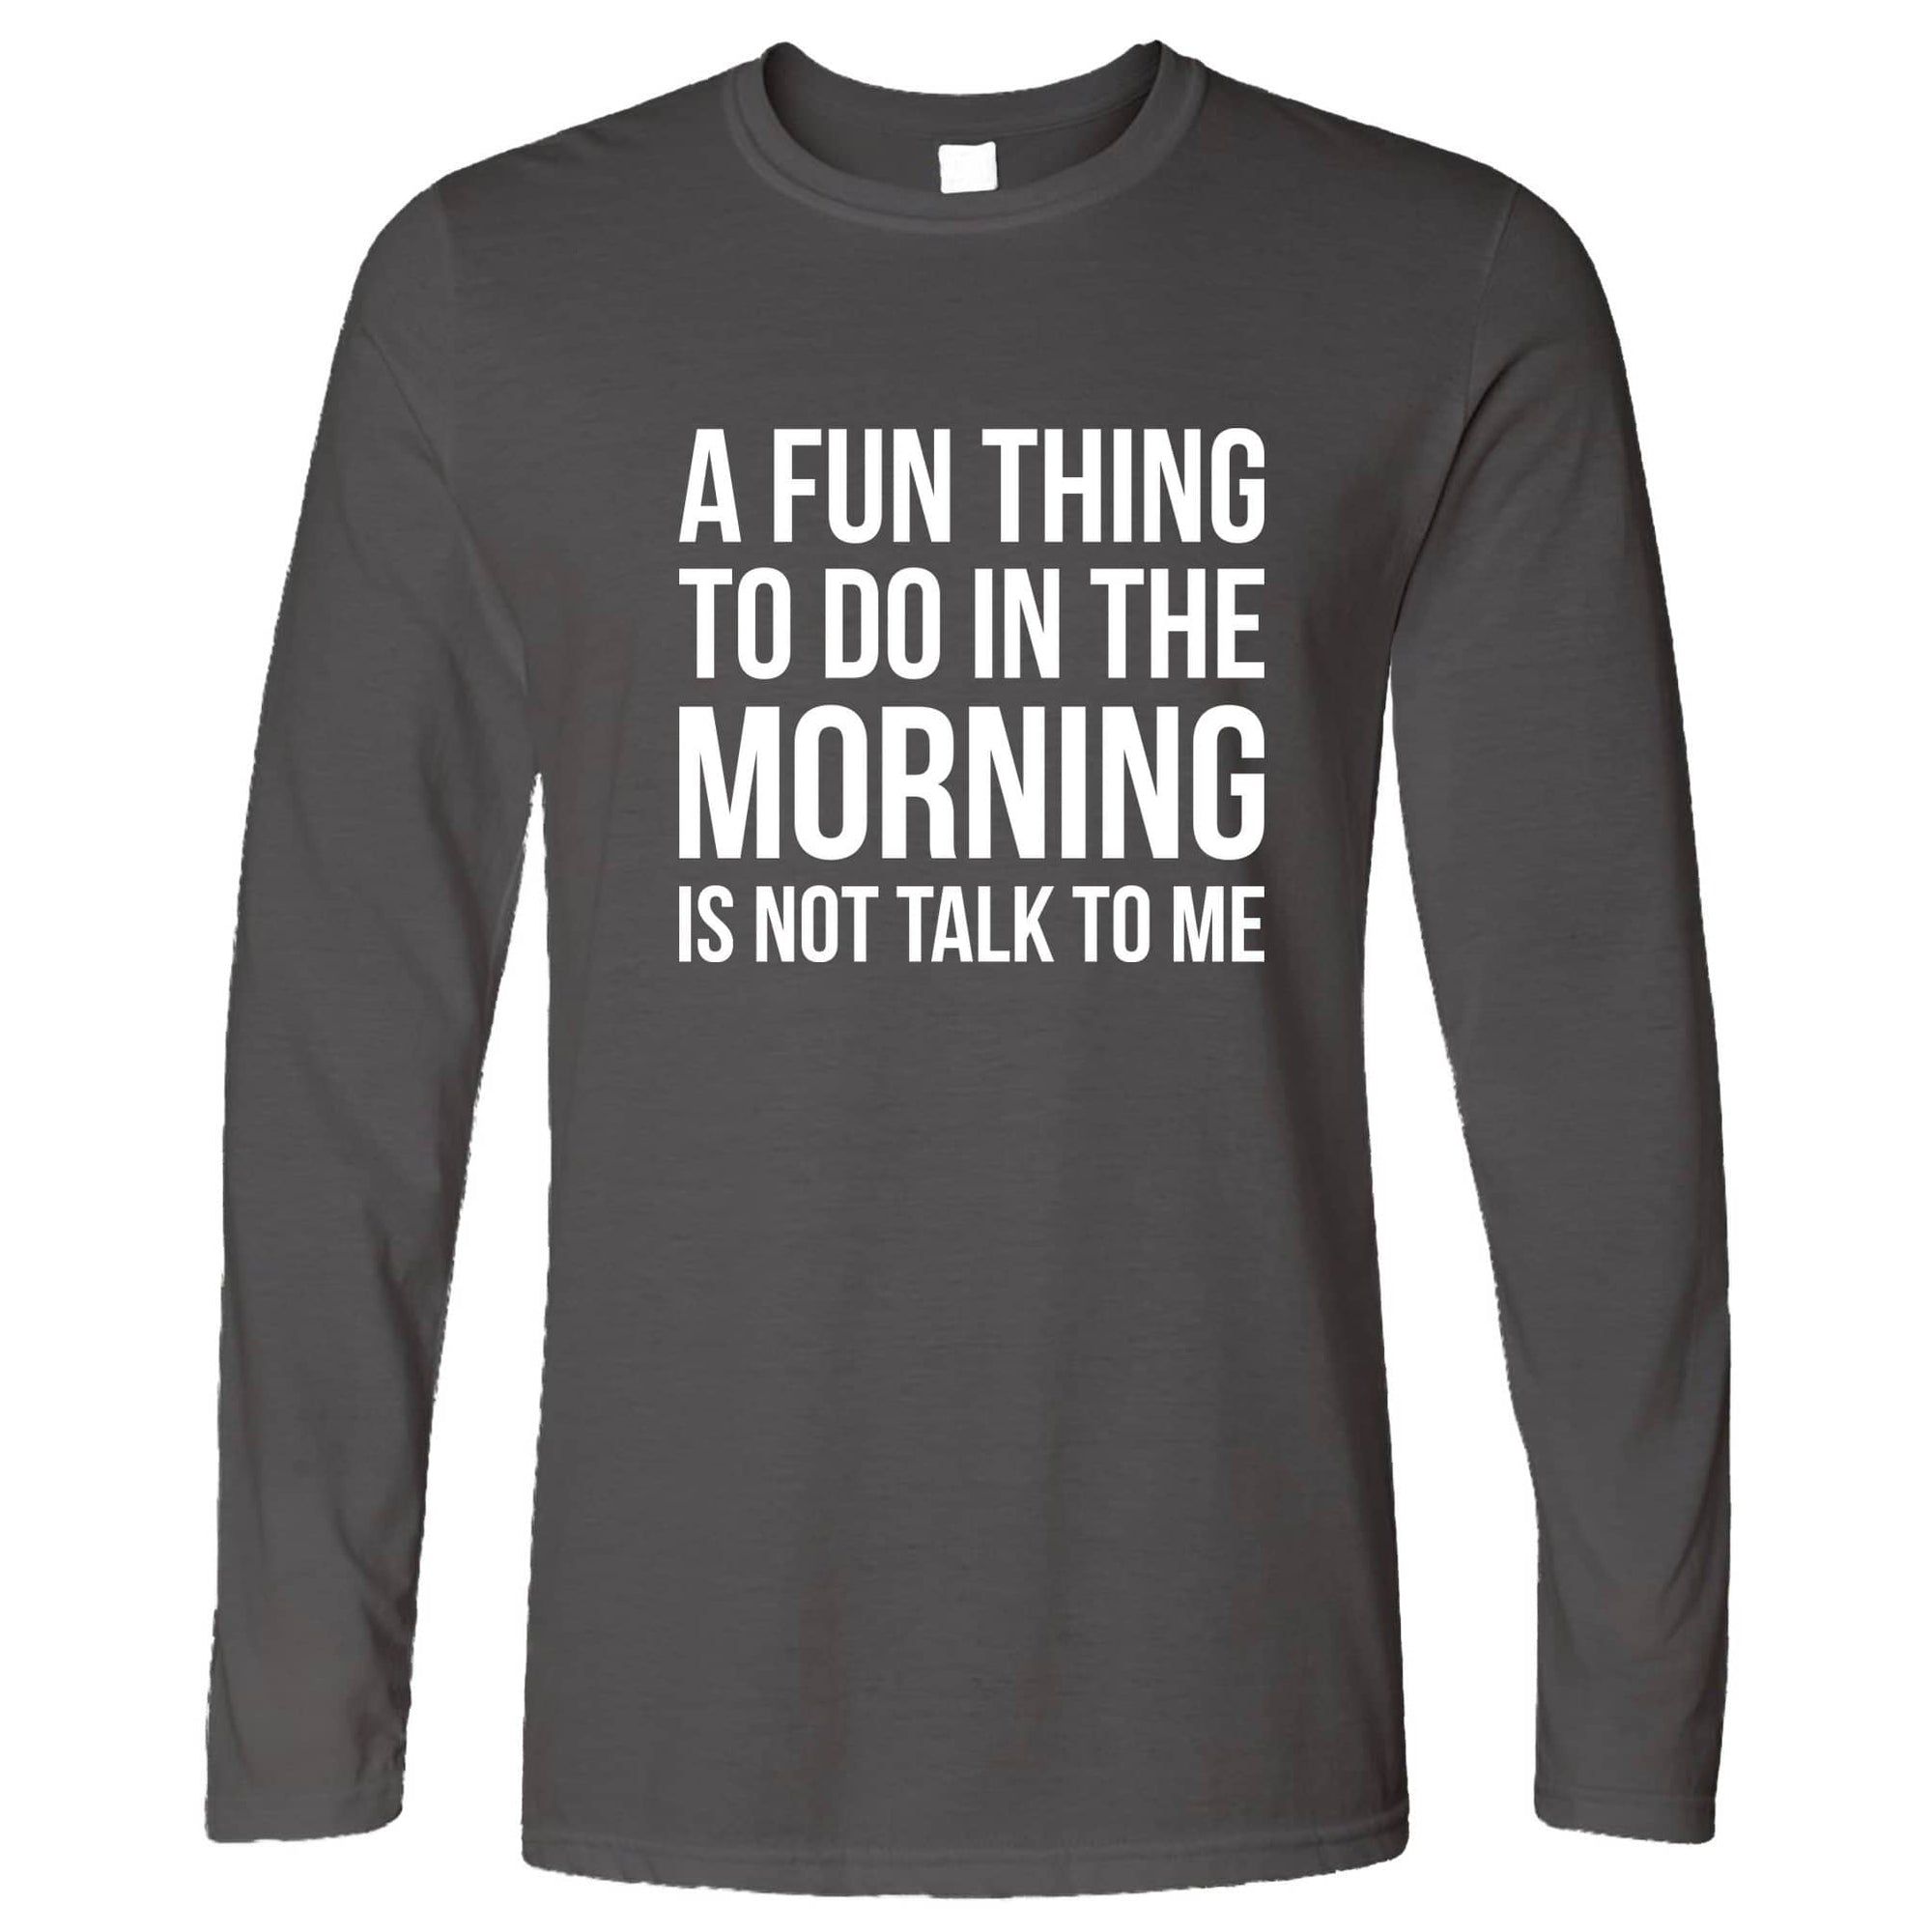 Funny Long Sleeve A Fun Thing To Do Is Not Talk To Me